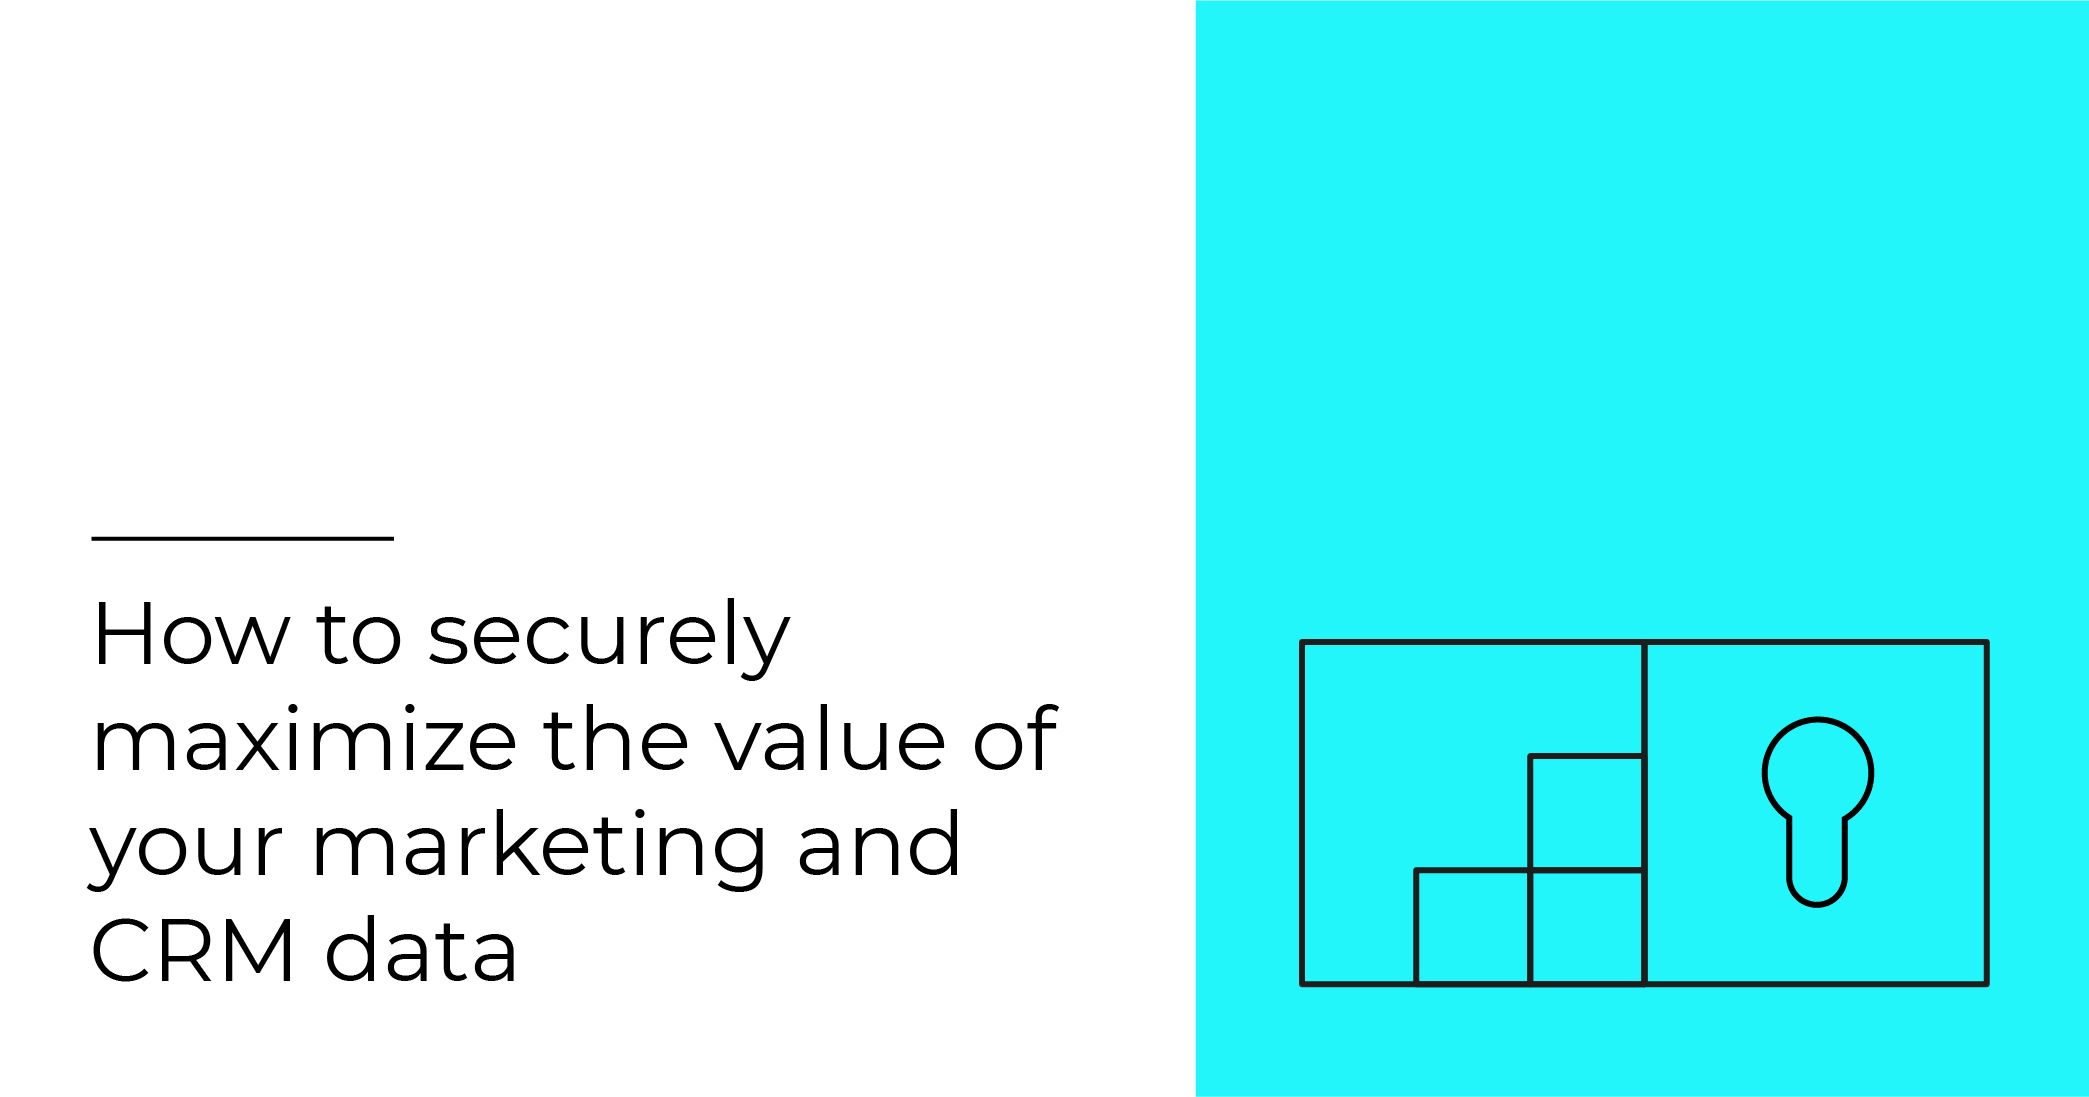 How to securely maximize the value of your marketing and CRM data